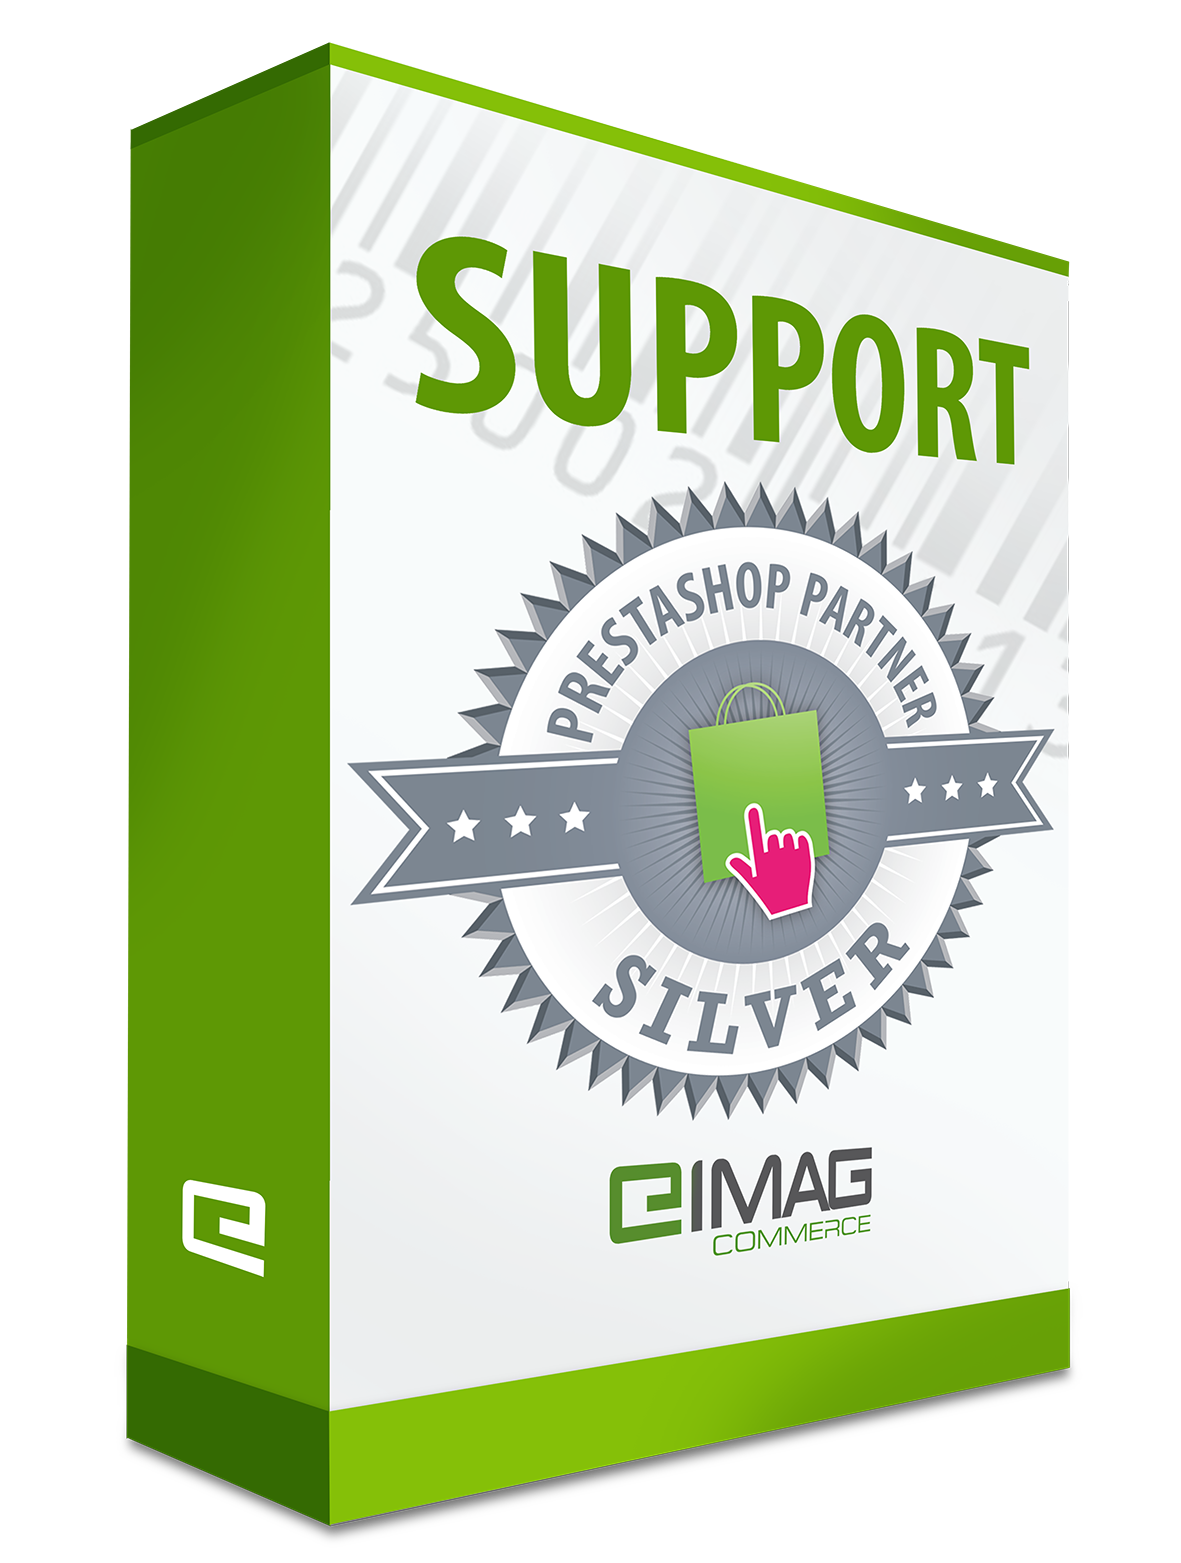 prestashop support pudełko